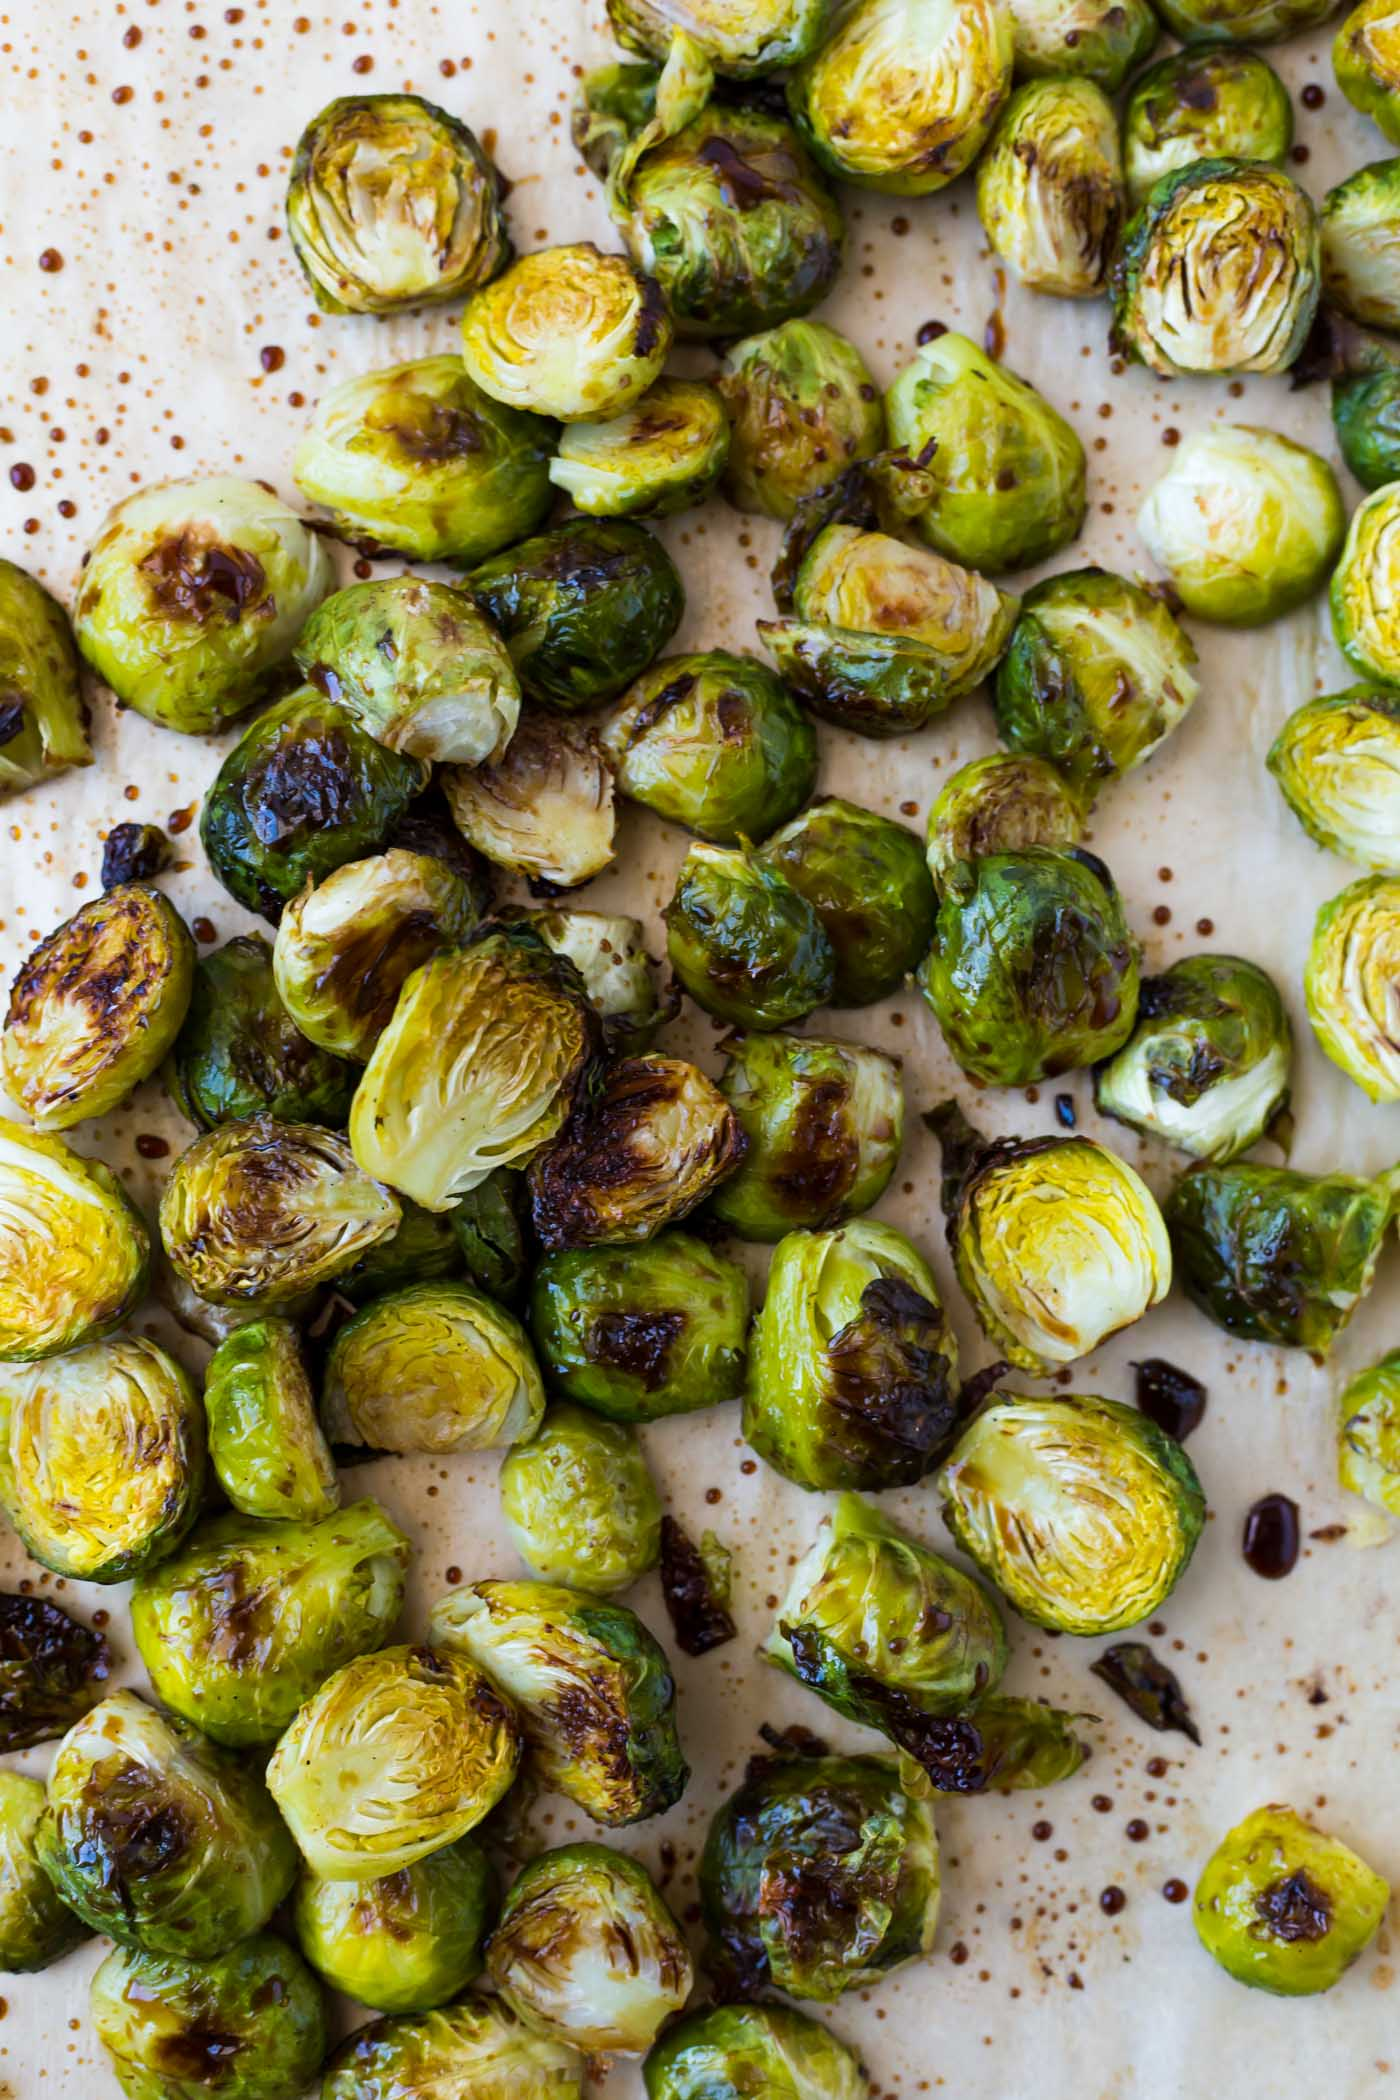 roasted brussels sprouts with balsamic vinegar on baking sheet